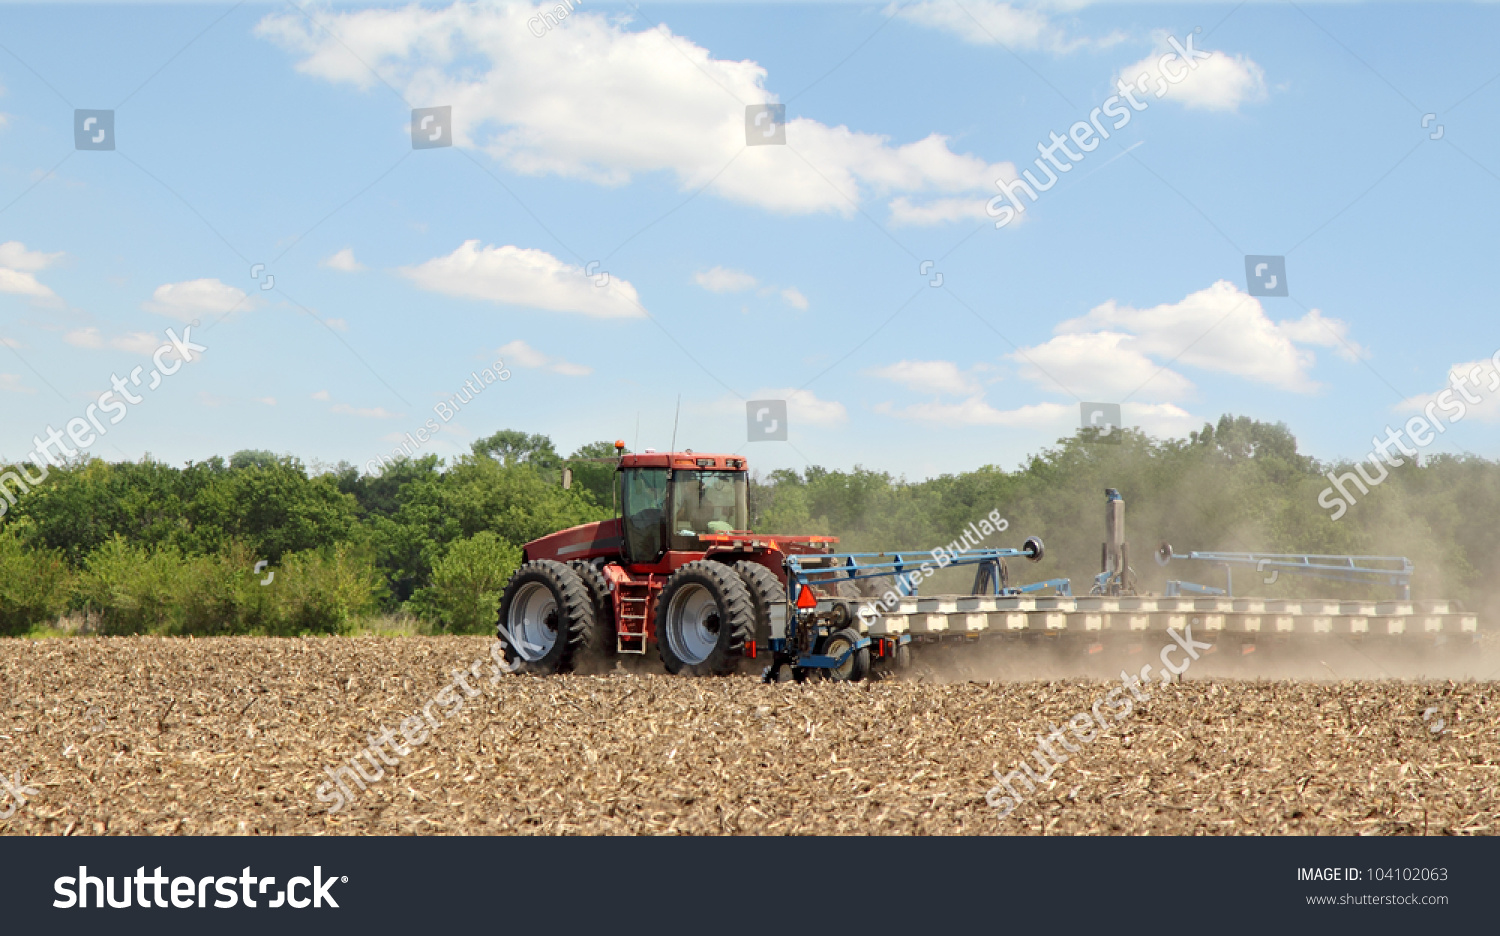 Tractor In Field Planting : Red tractor planting crop farm field stock photo